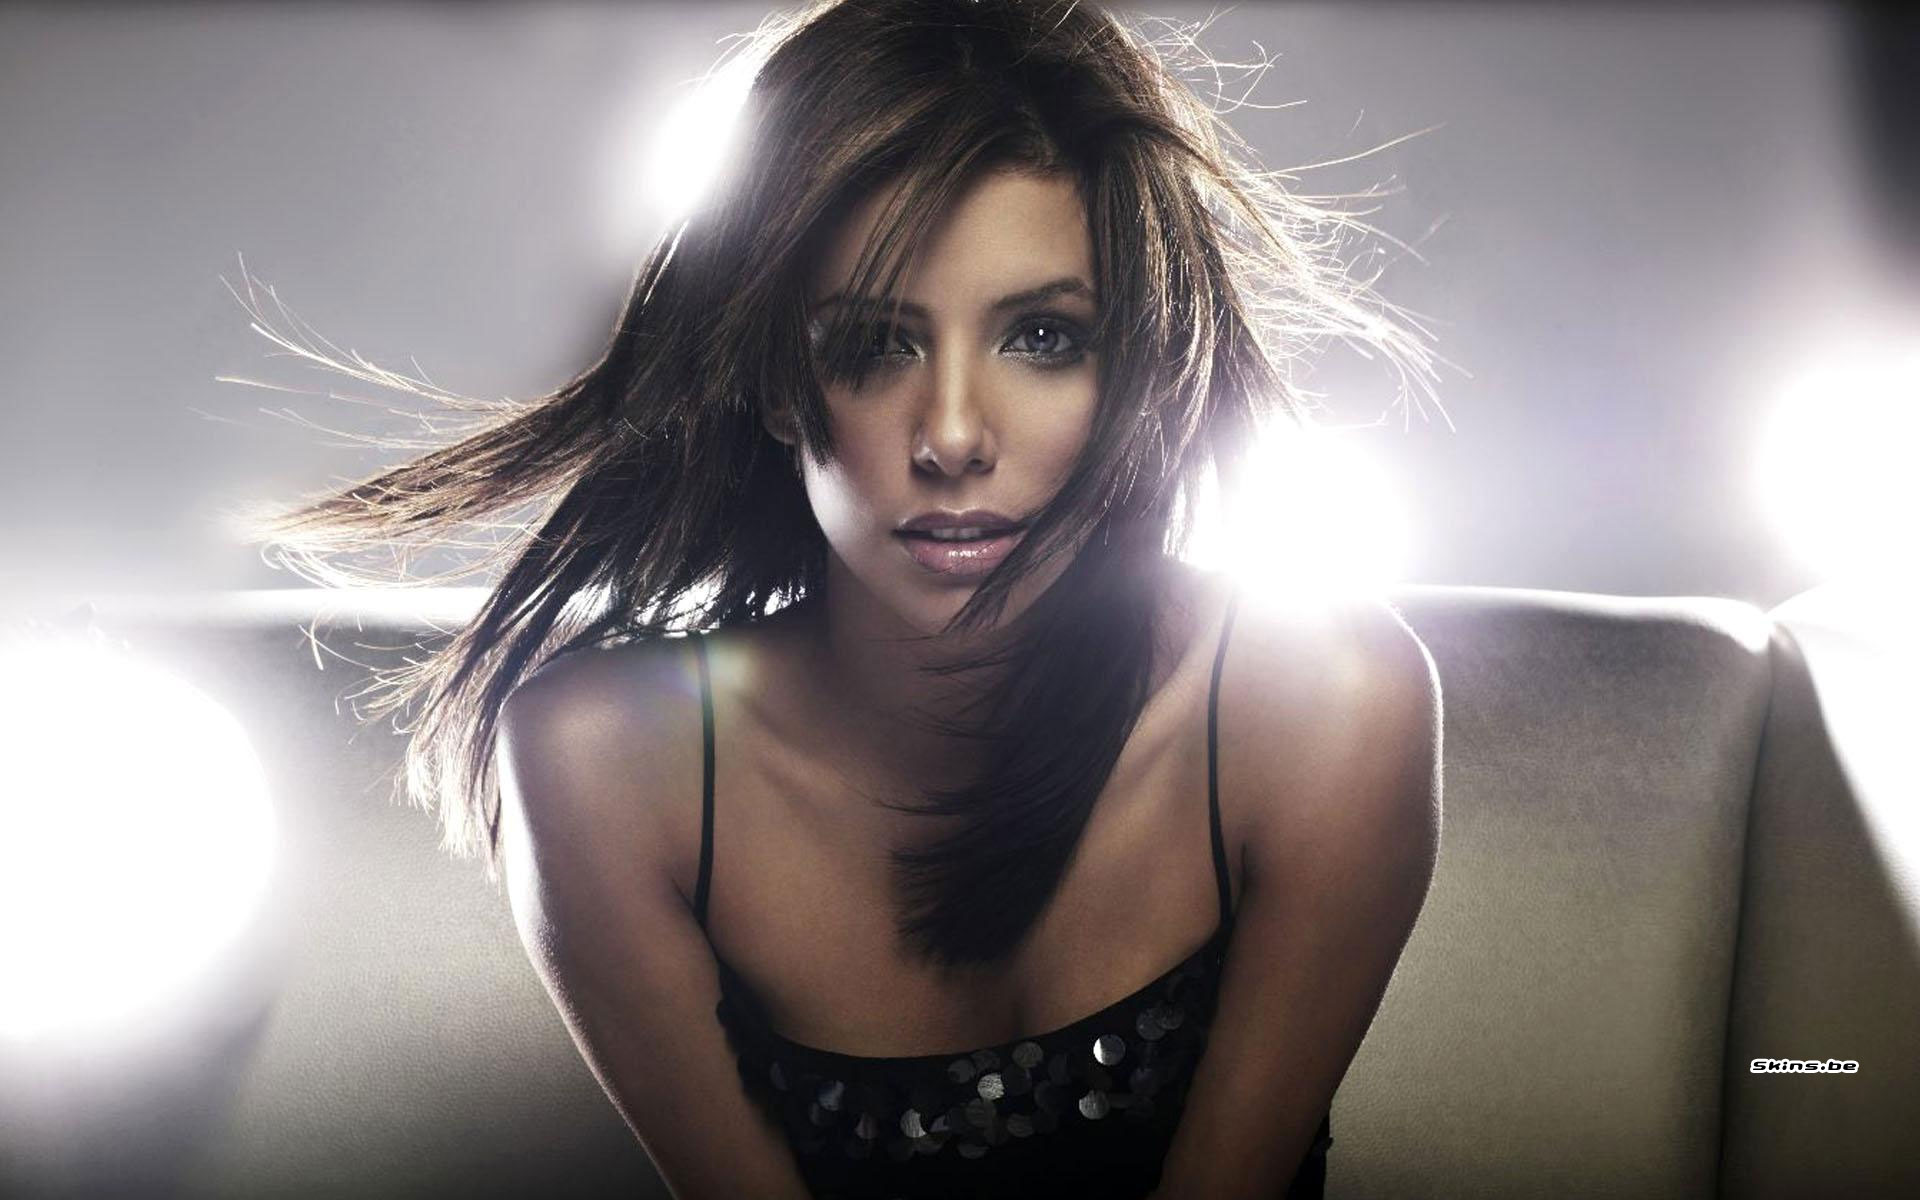 Eva longoria wallpapers high resolution and quality download - High resolution wallpaper celebrity ...